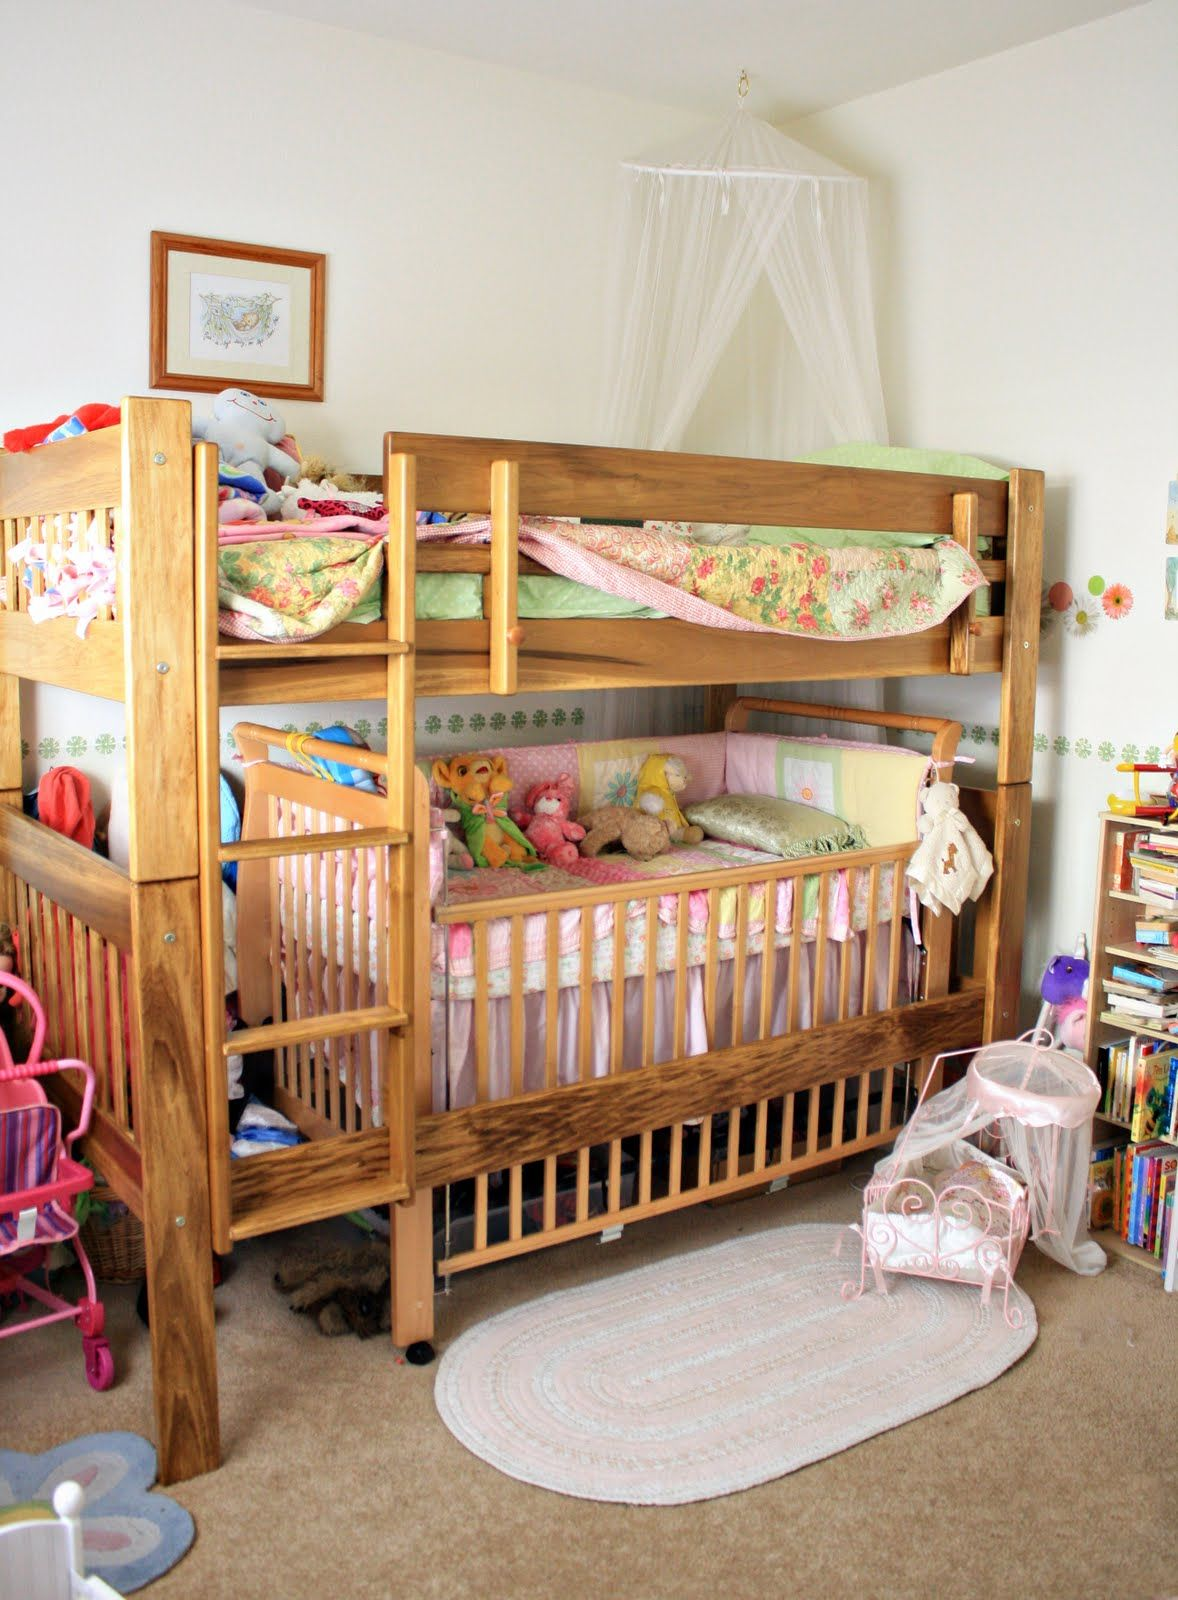 creative design bed turned that baby cribs into toddler beds improvement pictures turns ideas turn home new crib of